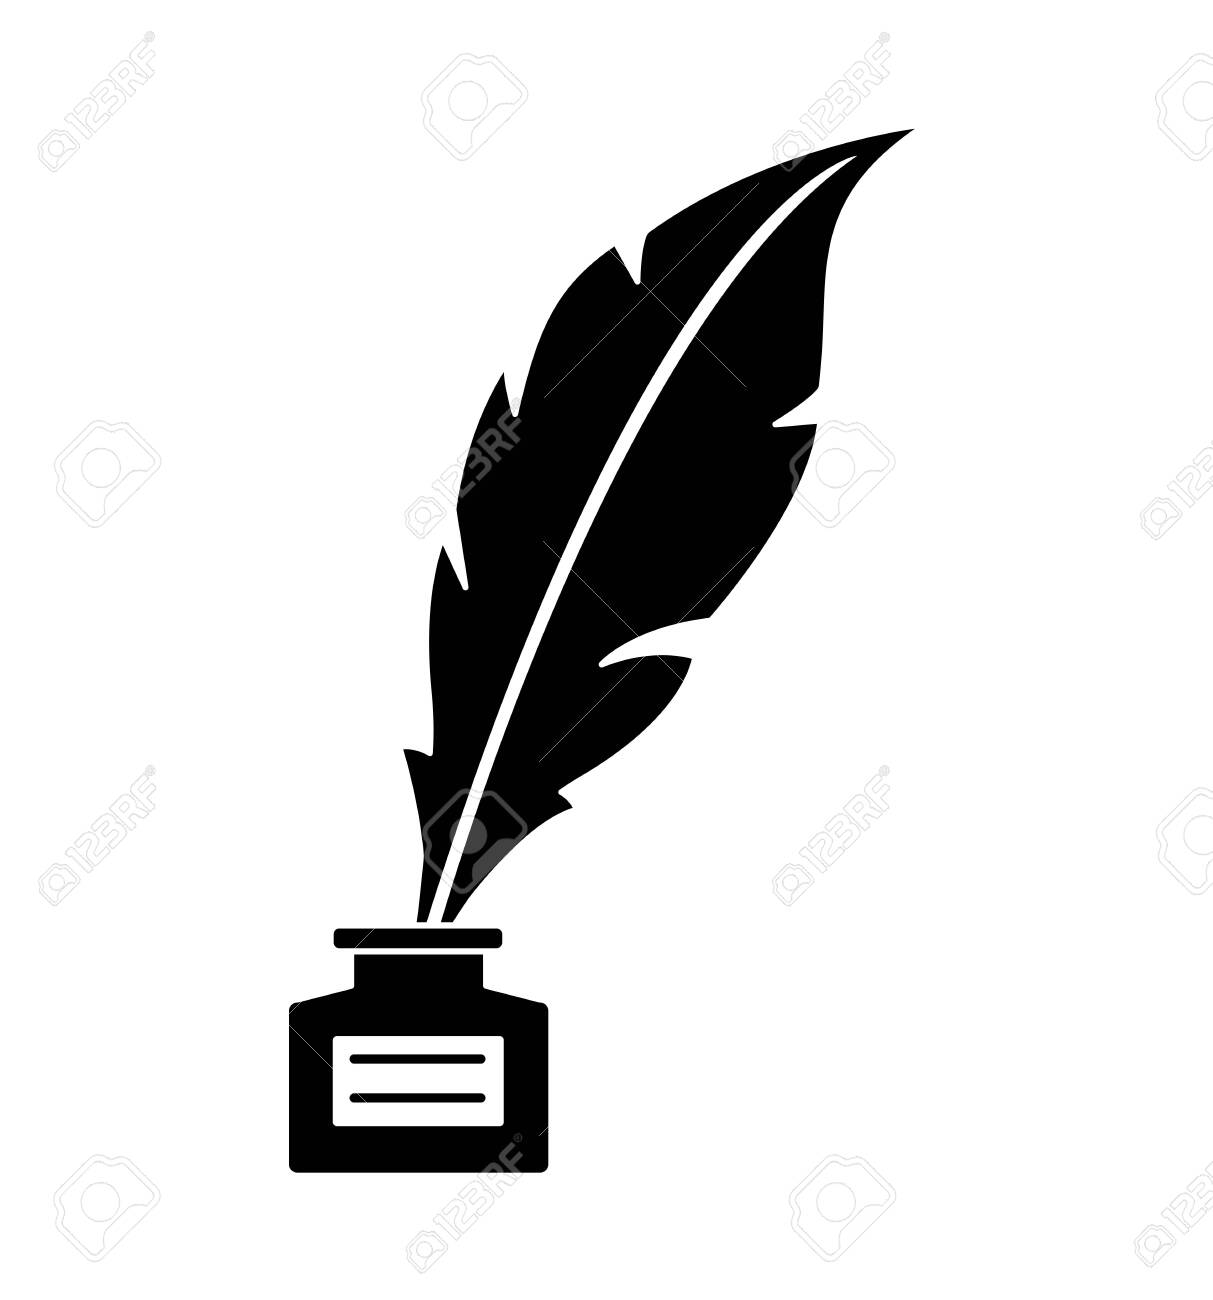 Old feather with ink isolated on white background vector illustration eps 10 - 122687053